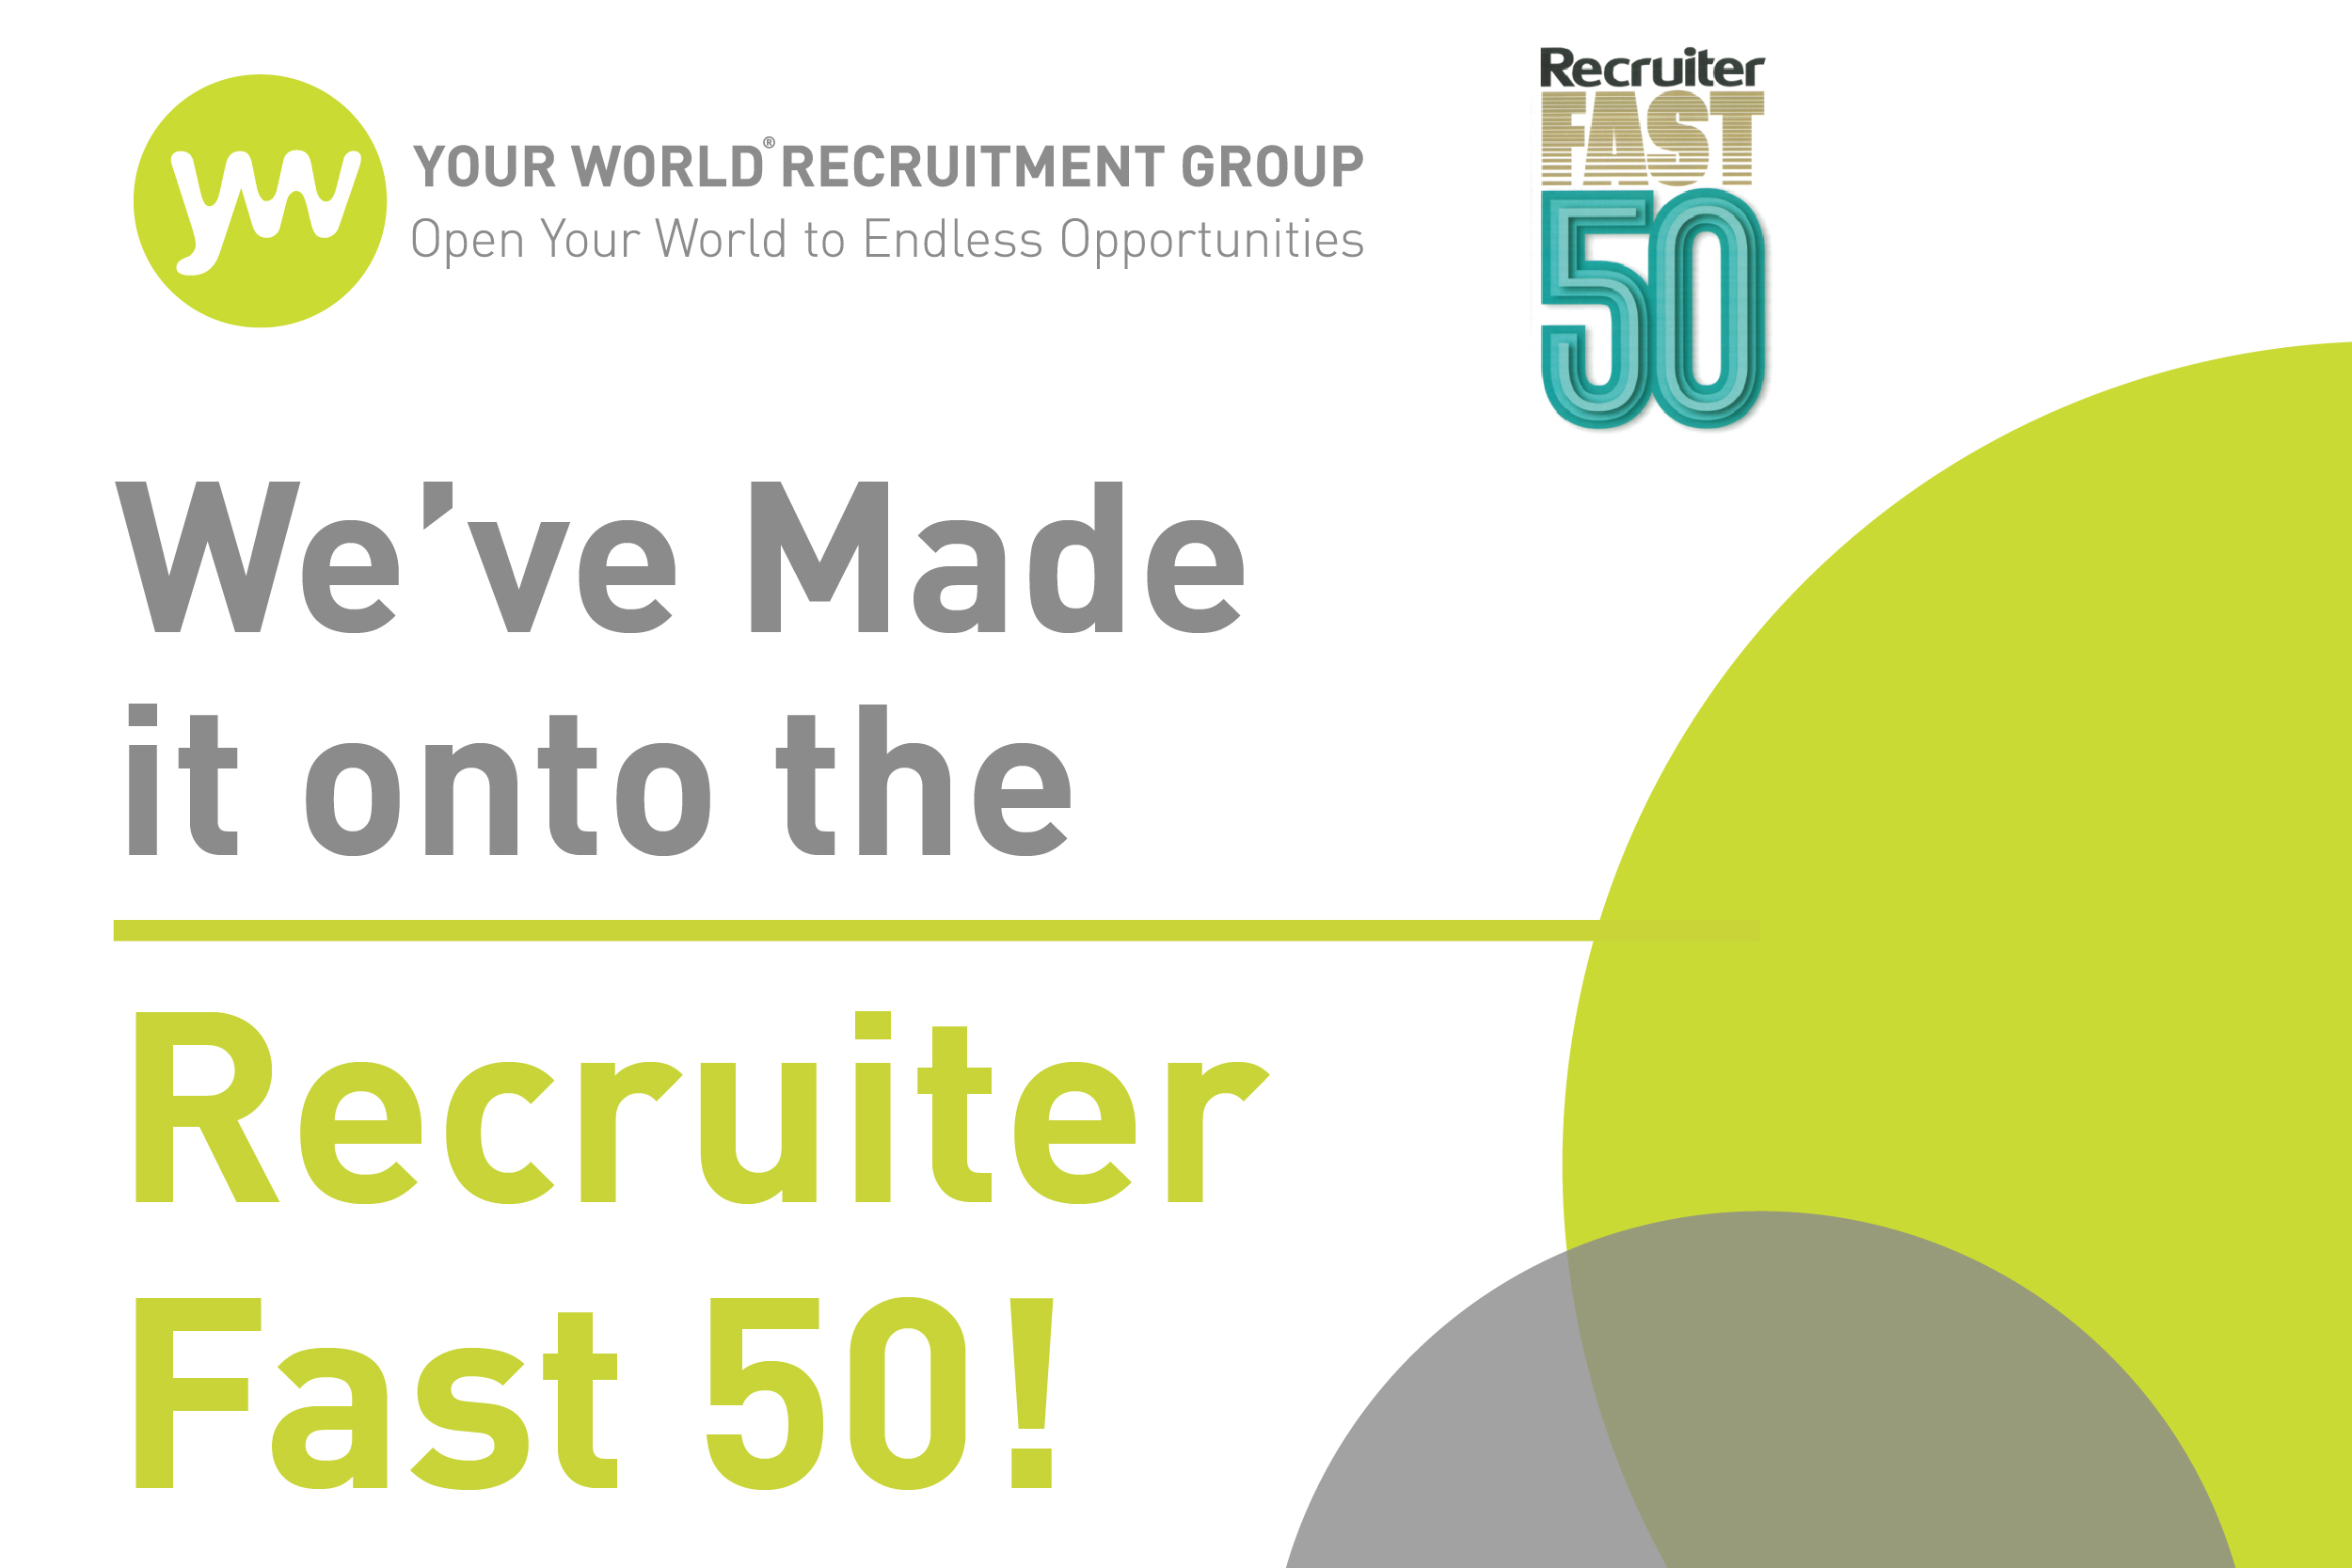 We've Made it onto the Recruiter Fast 50!